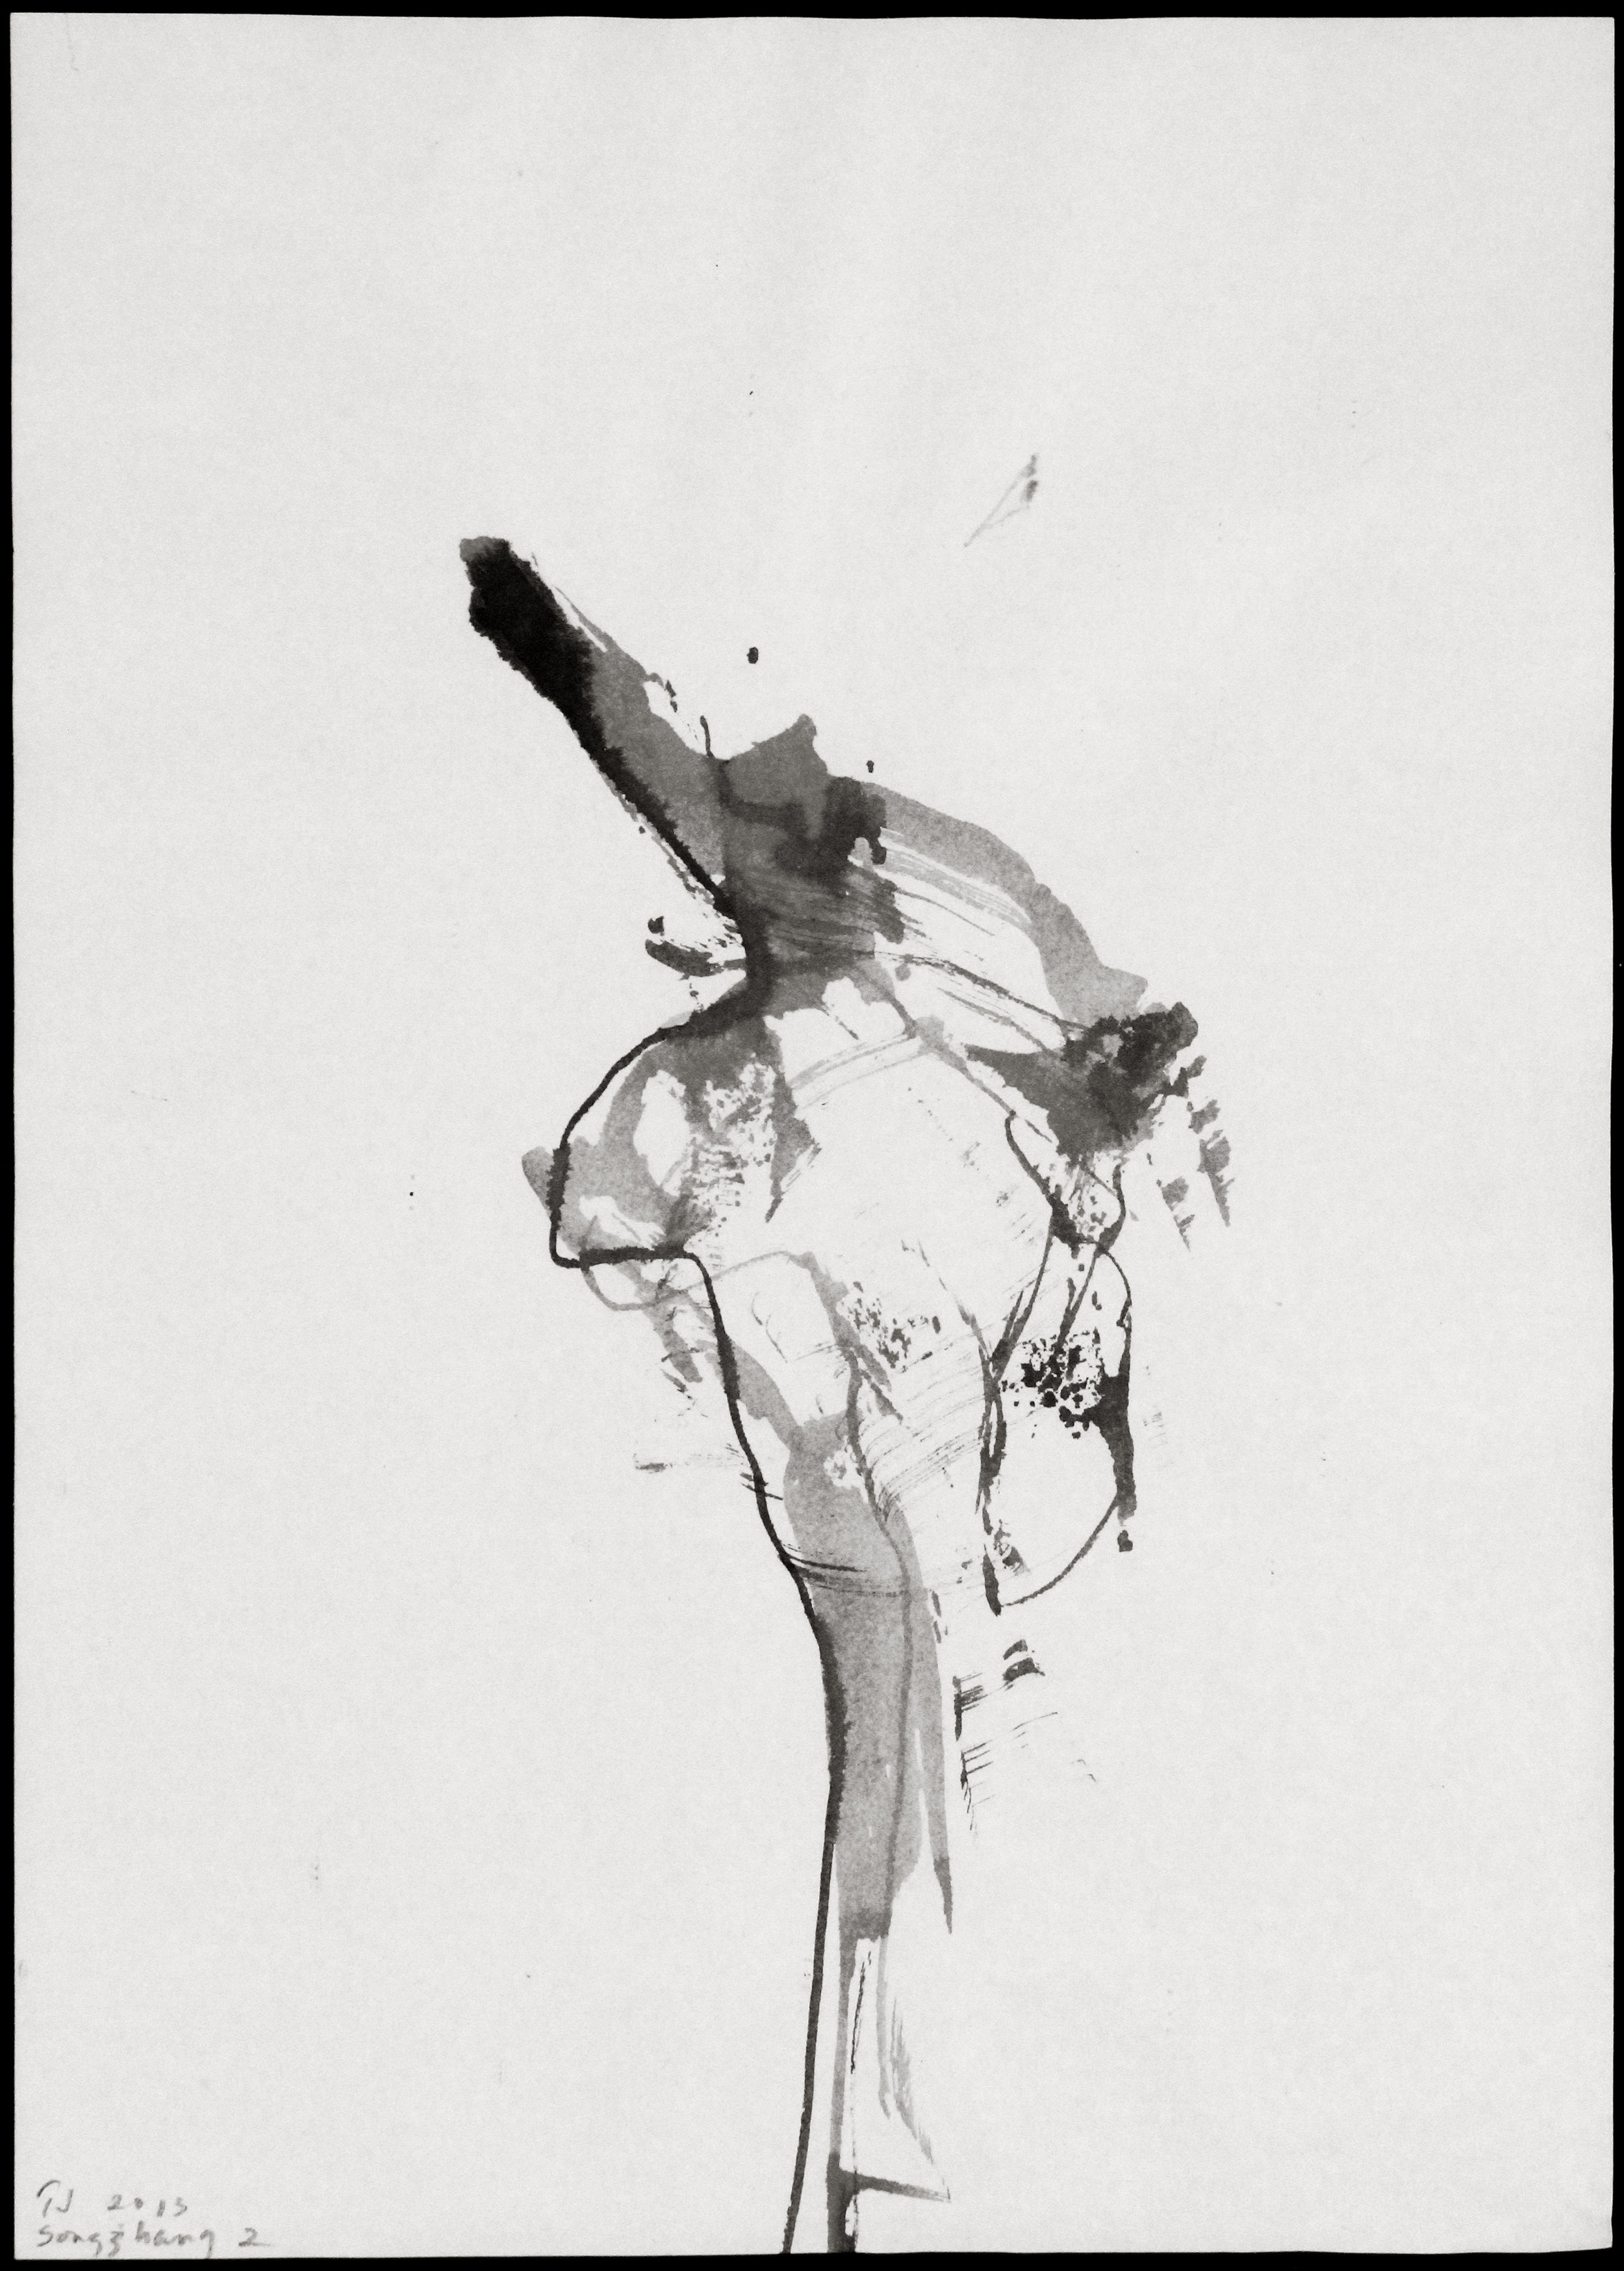 Songzhuang 2, 2013, Ink on Rice Paper, 21 in x 16 in